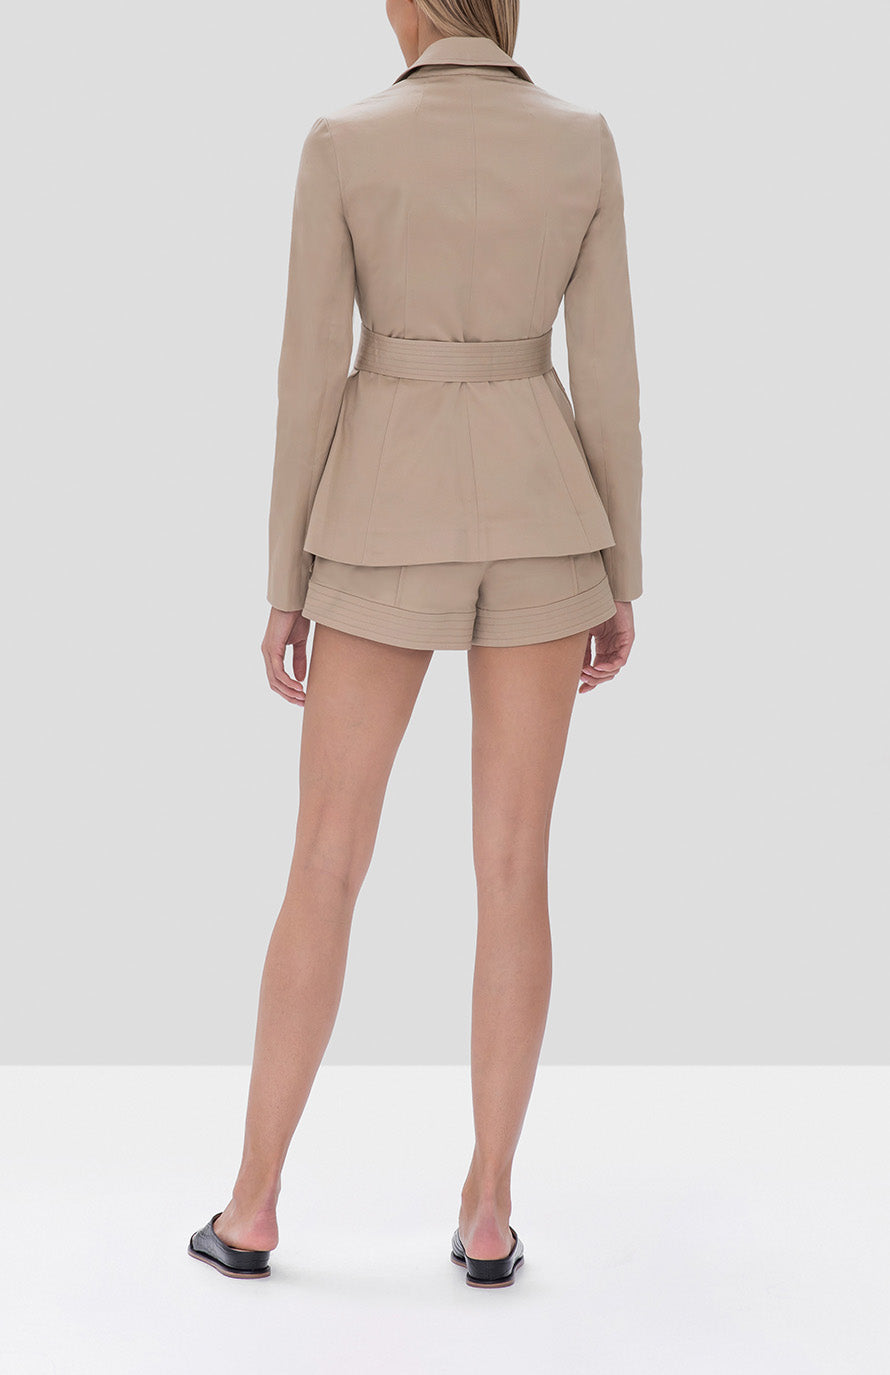 elka jacket and winnick shorts tan - Rear View